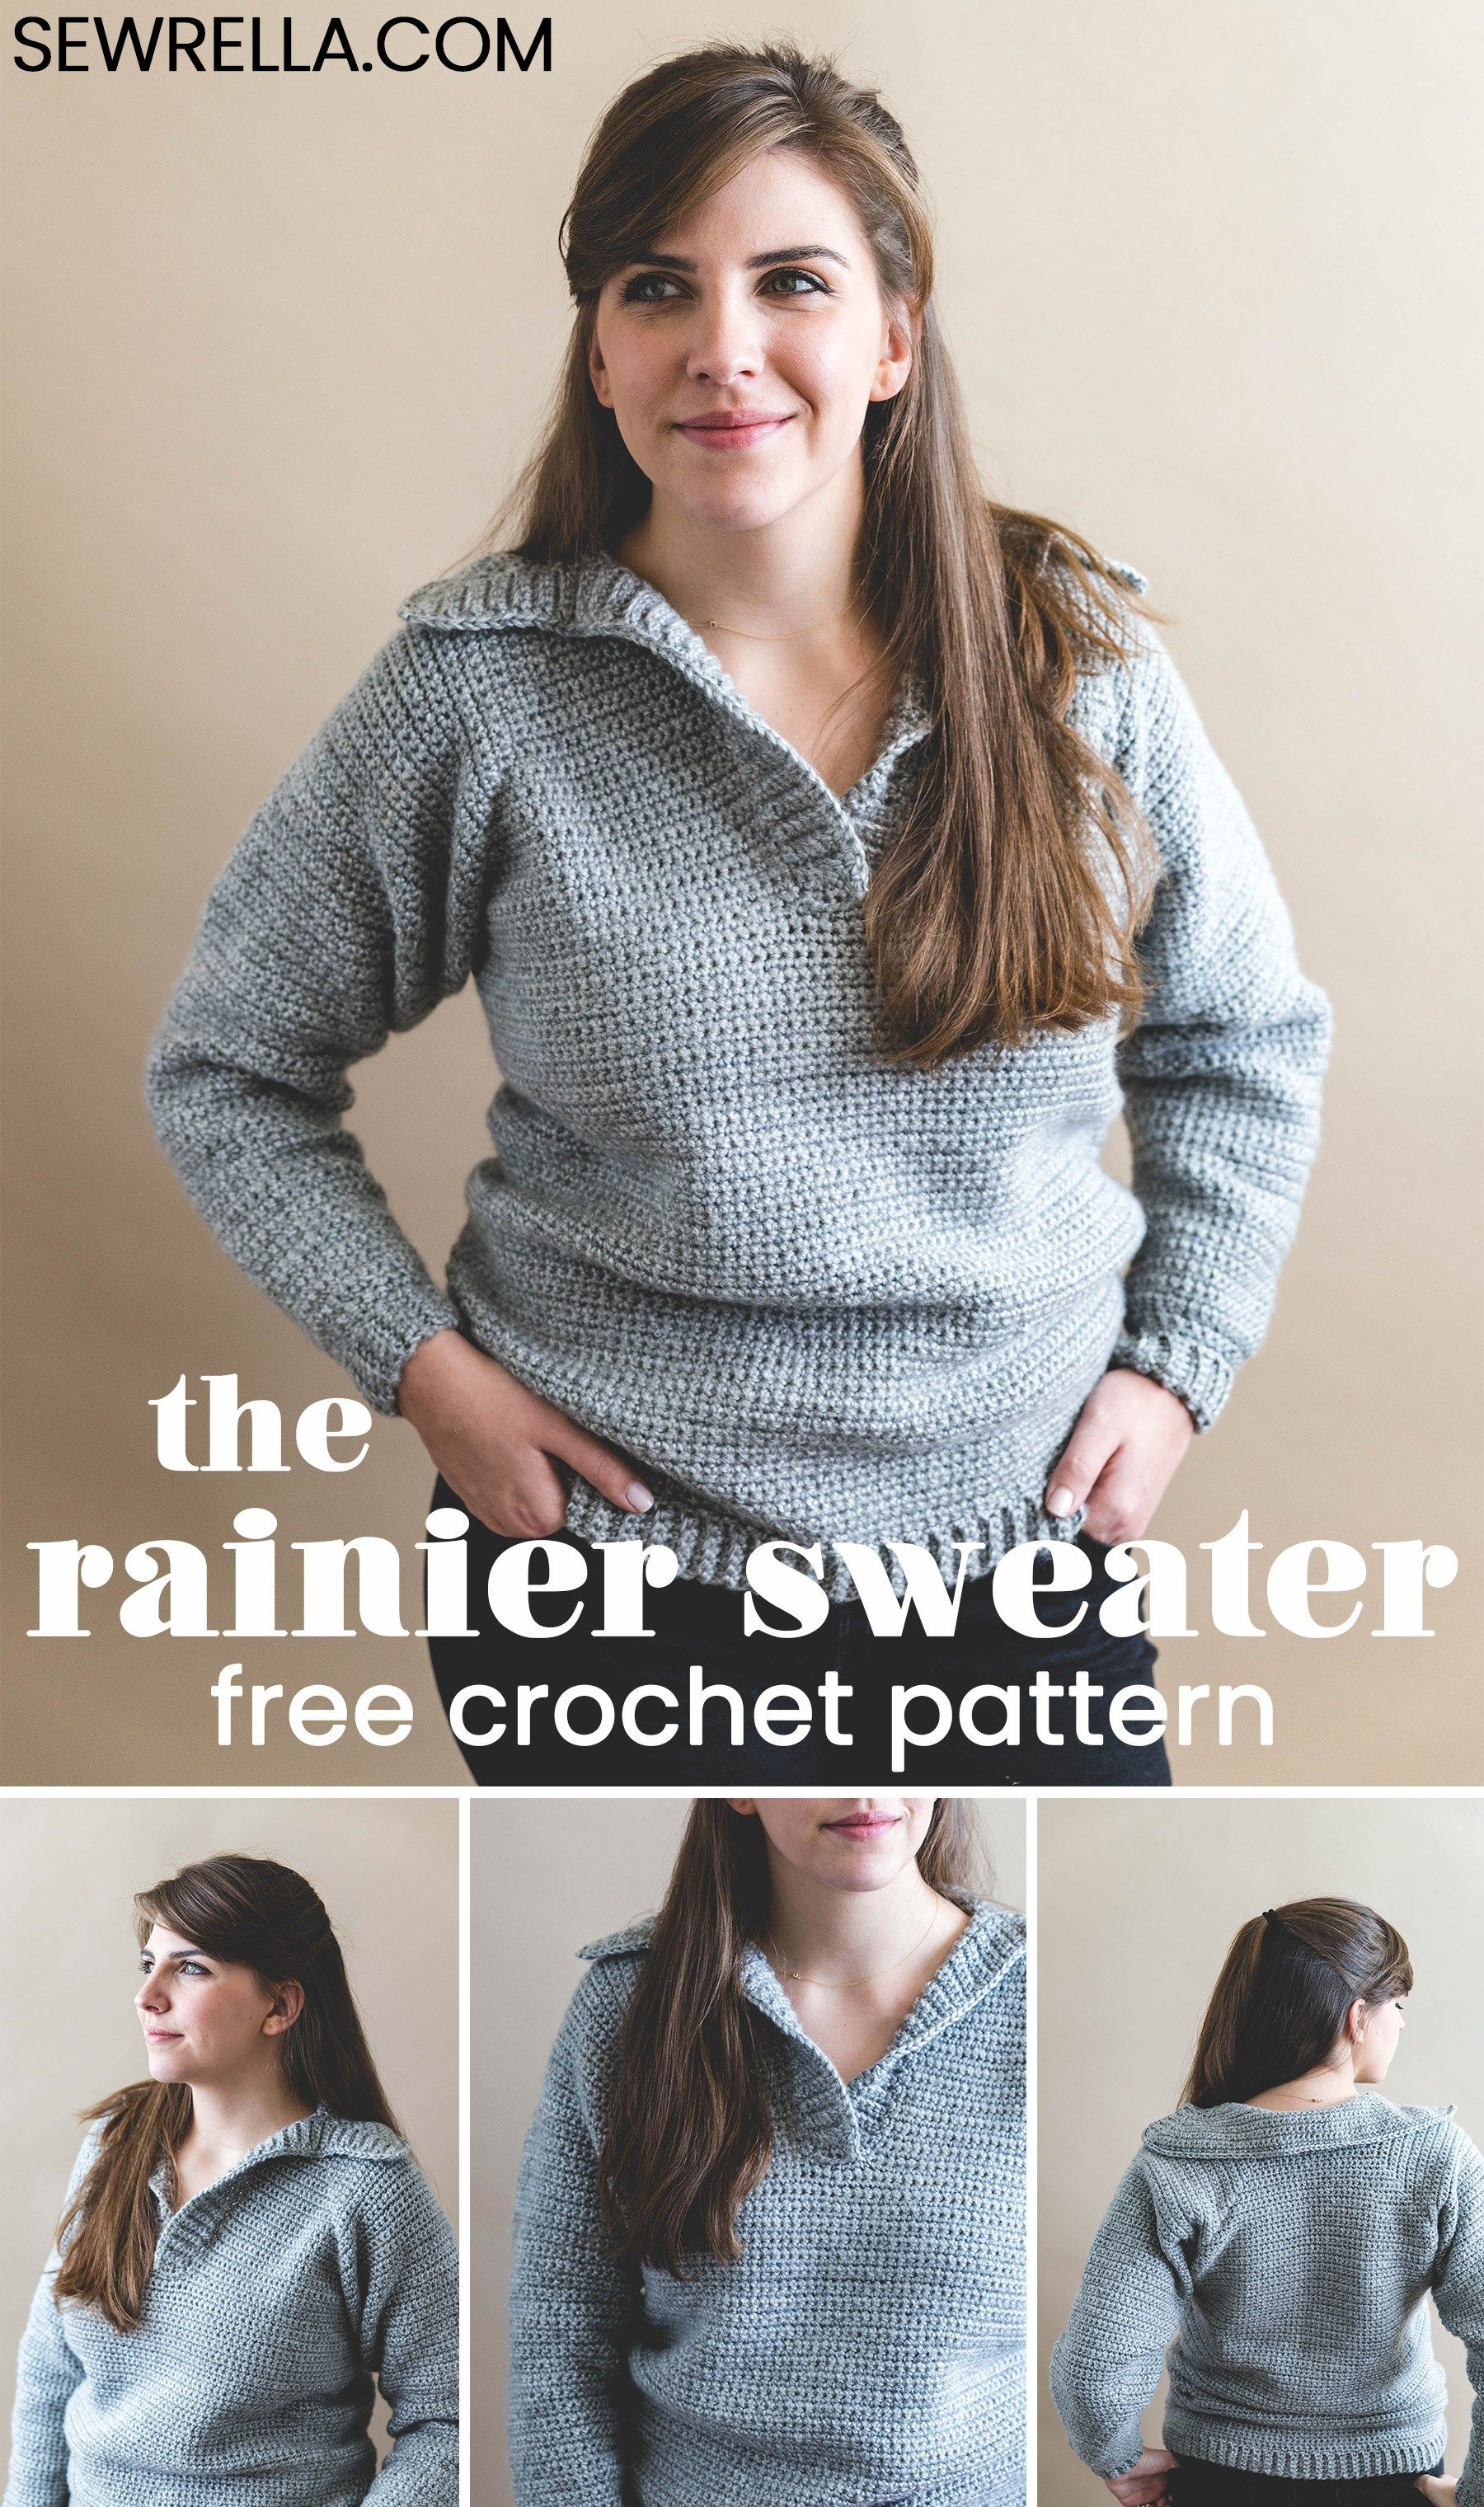 26bf730787c27 Sizes XS-3XL and a photo tutorial to help you through - included in the  free pattern!  crochet  freepattern  sweater  pullover ...